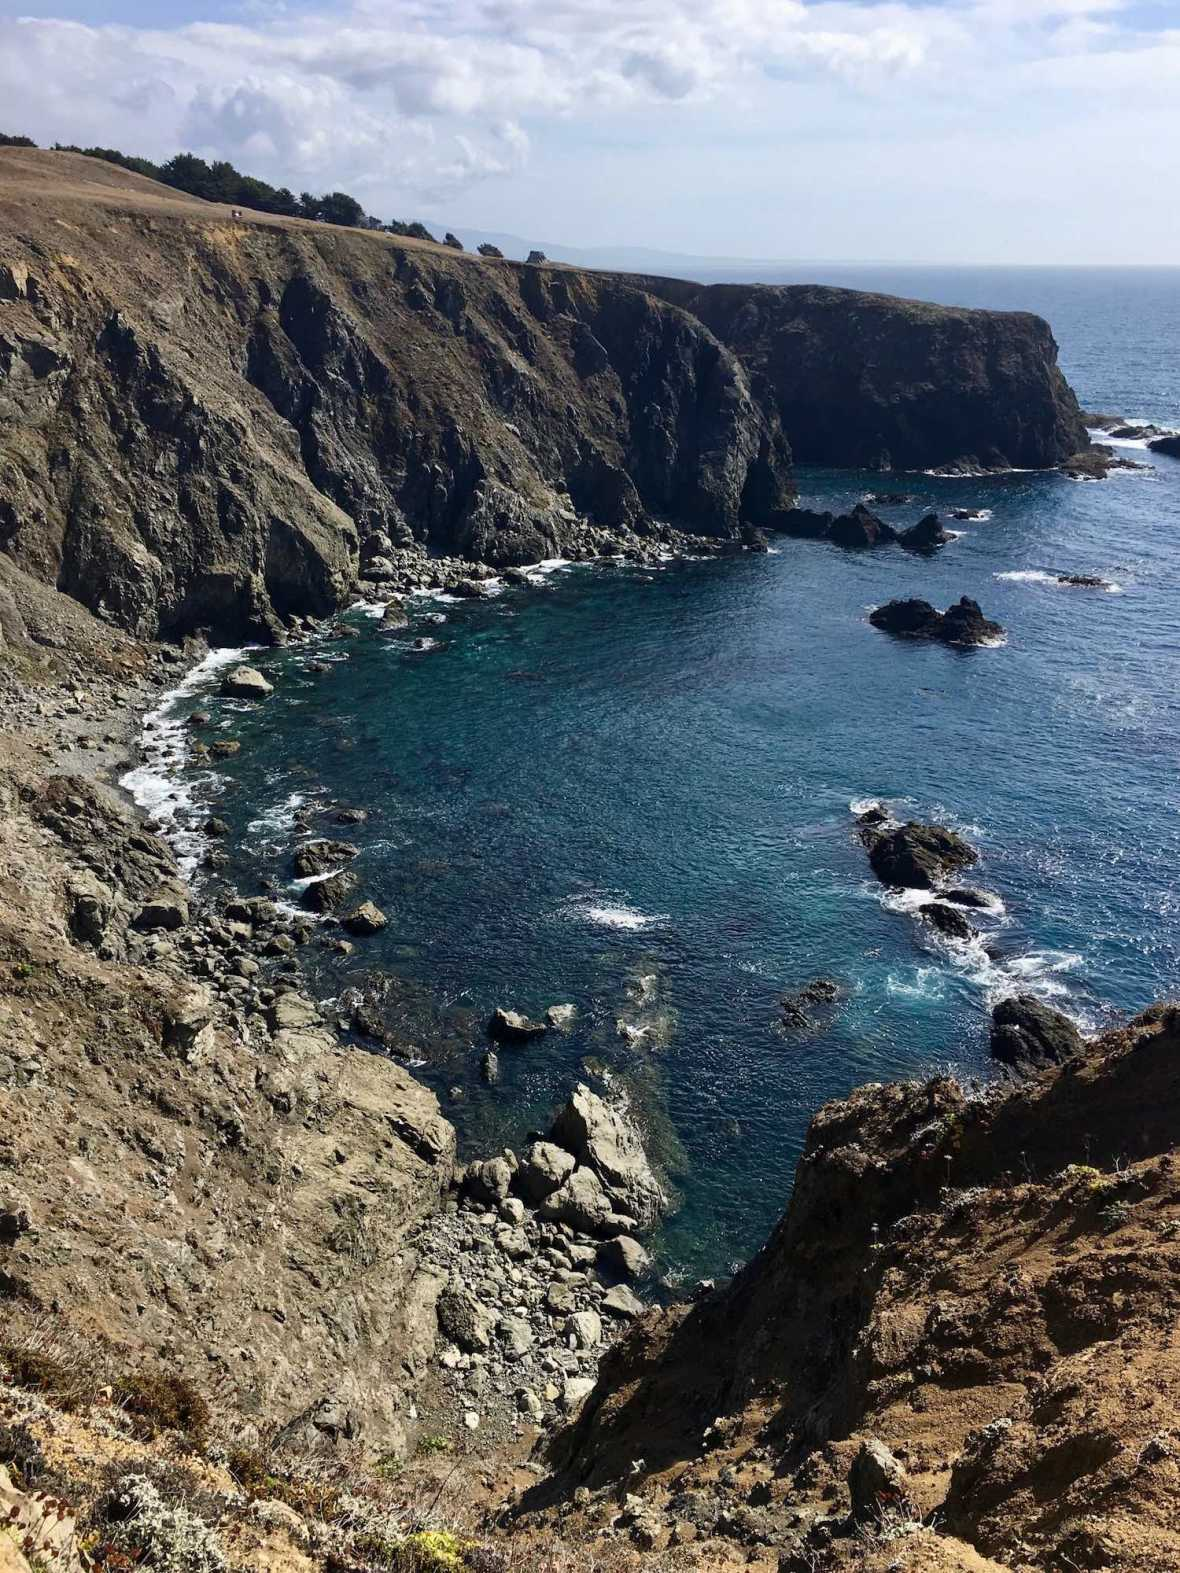 Mendocino Headlands on California's Pacific Coast